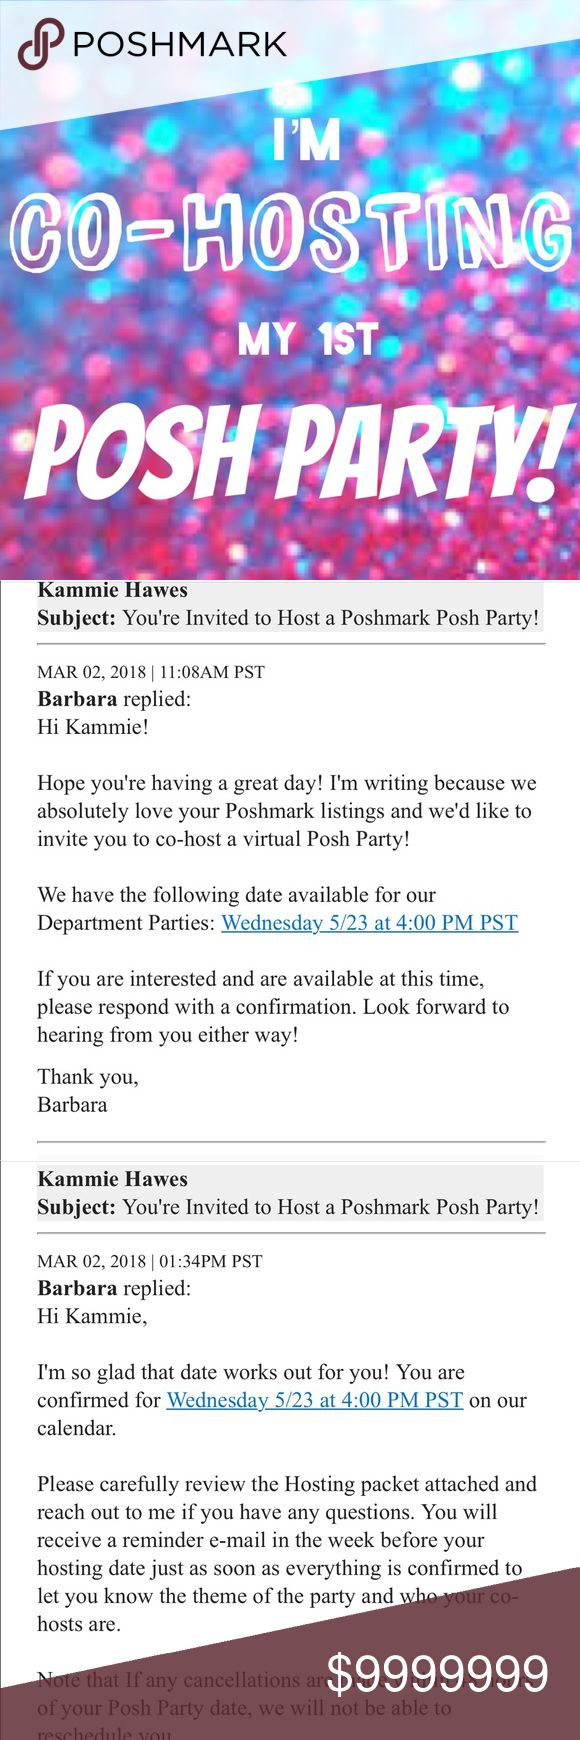 What comes before Part B? PART-AY!🎉🎉🎉🎉🎉 I'm SO excited to be CO-HOSTING my first Posh Party! Help me spread the word and tag yourself and your PFF's for possible Host Picks!   Join Me!  Date: May 23rd, 2018 Time: 4 P.M. (PST) 6 P.M. MY TIME (CST) Theme: TBA   🛑🛑PLEASE DO NOT SEND ANY LISTINGS TO MY DRESSING ROOM🛑🛑  ⭐️⭐️YOU MUST BE POSH COMPLIANT⭐️⭐️  🎉🎉I AM SOOO EXCITED ABOUT REVIEWING YOUR CLOSETS FOR HOST PICKS!🎉🎉  💃🏼💃🏼GET READY TO PARTY💃🏼💃🏼 Other